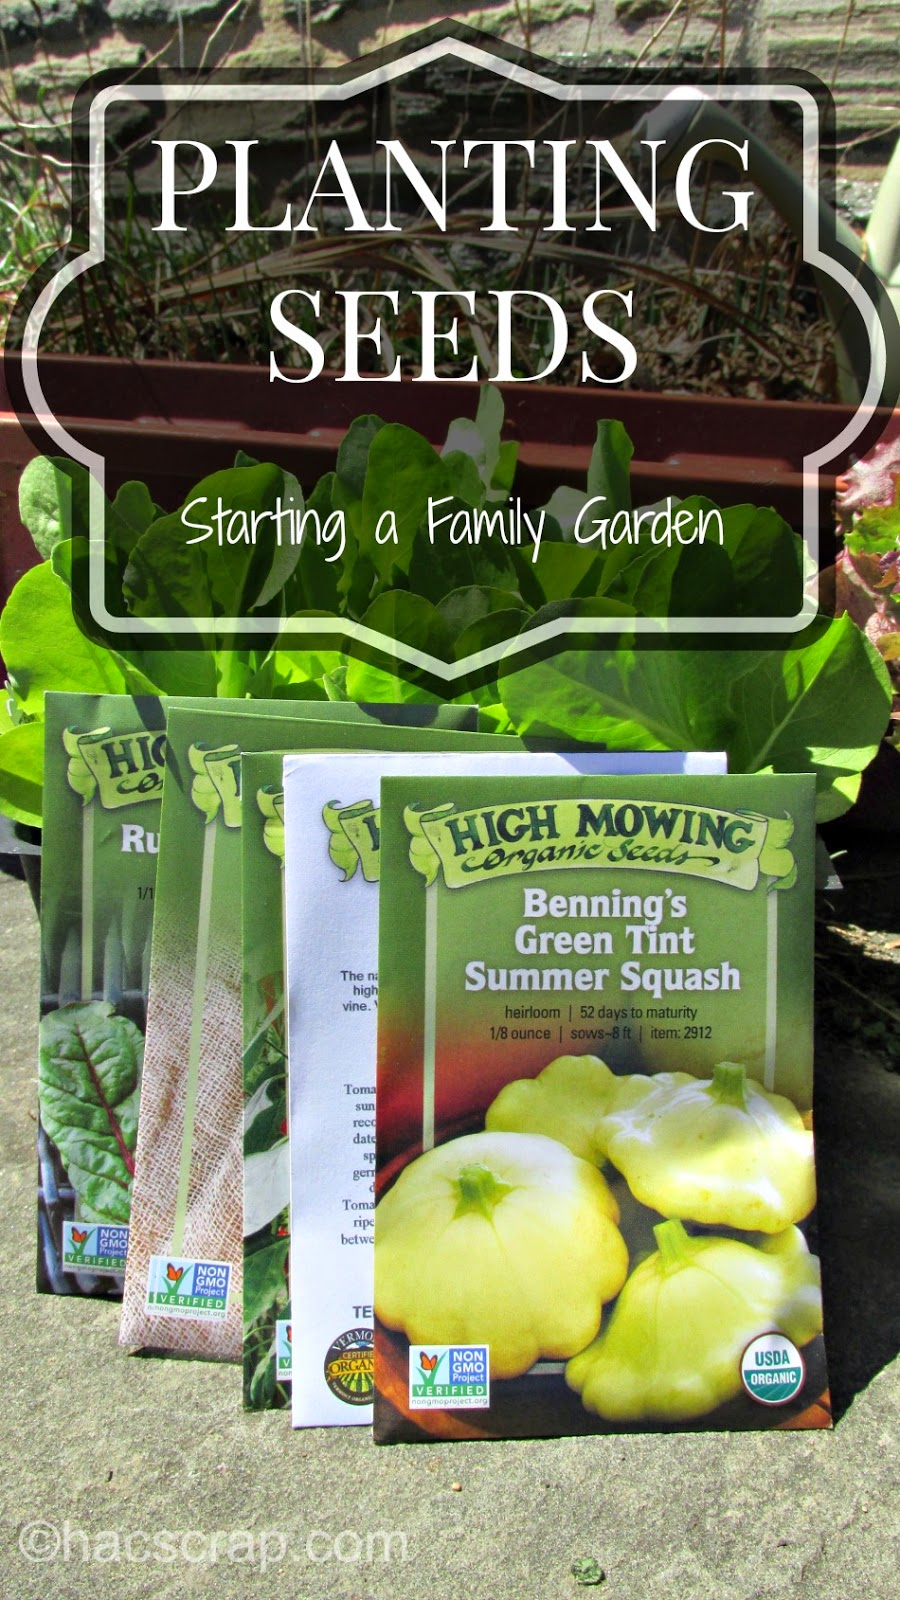 How to plant a family garden using organic seeds